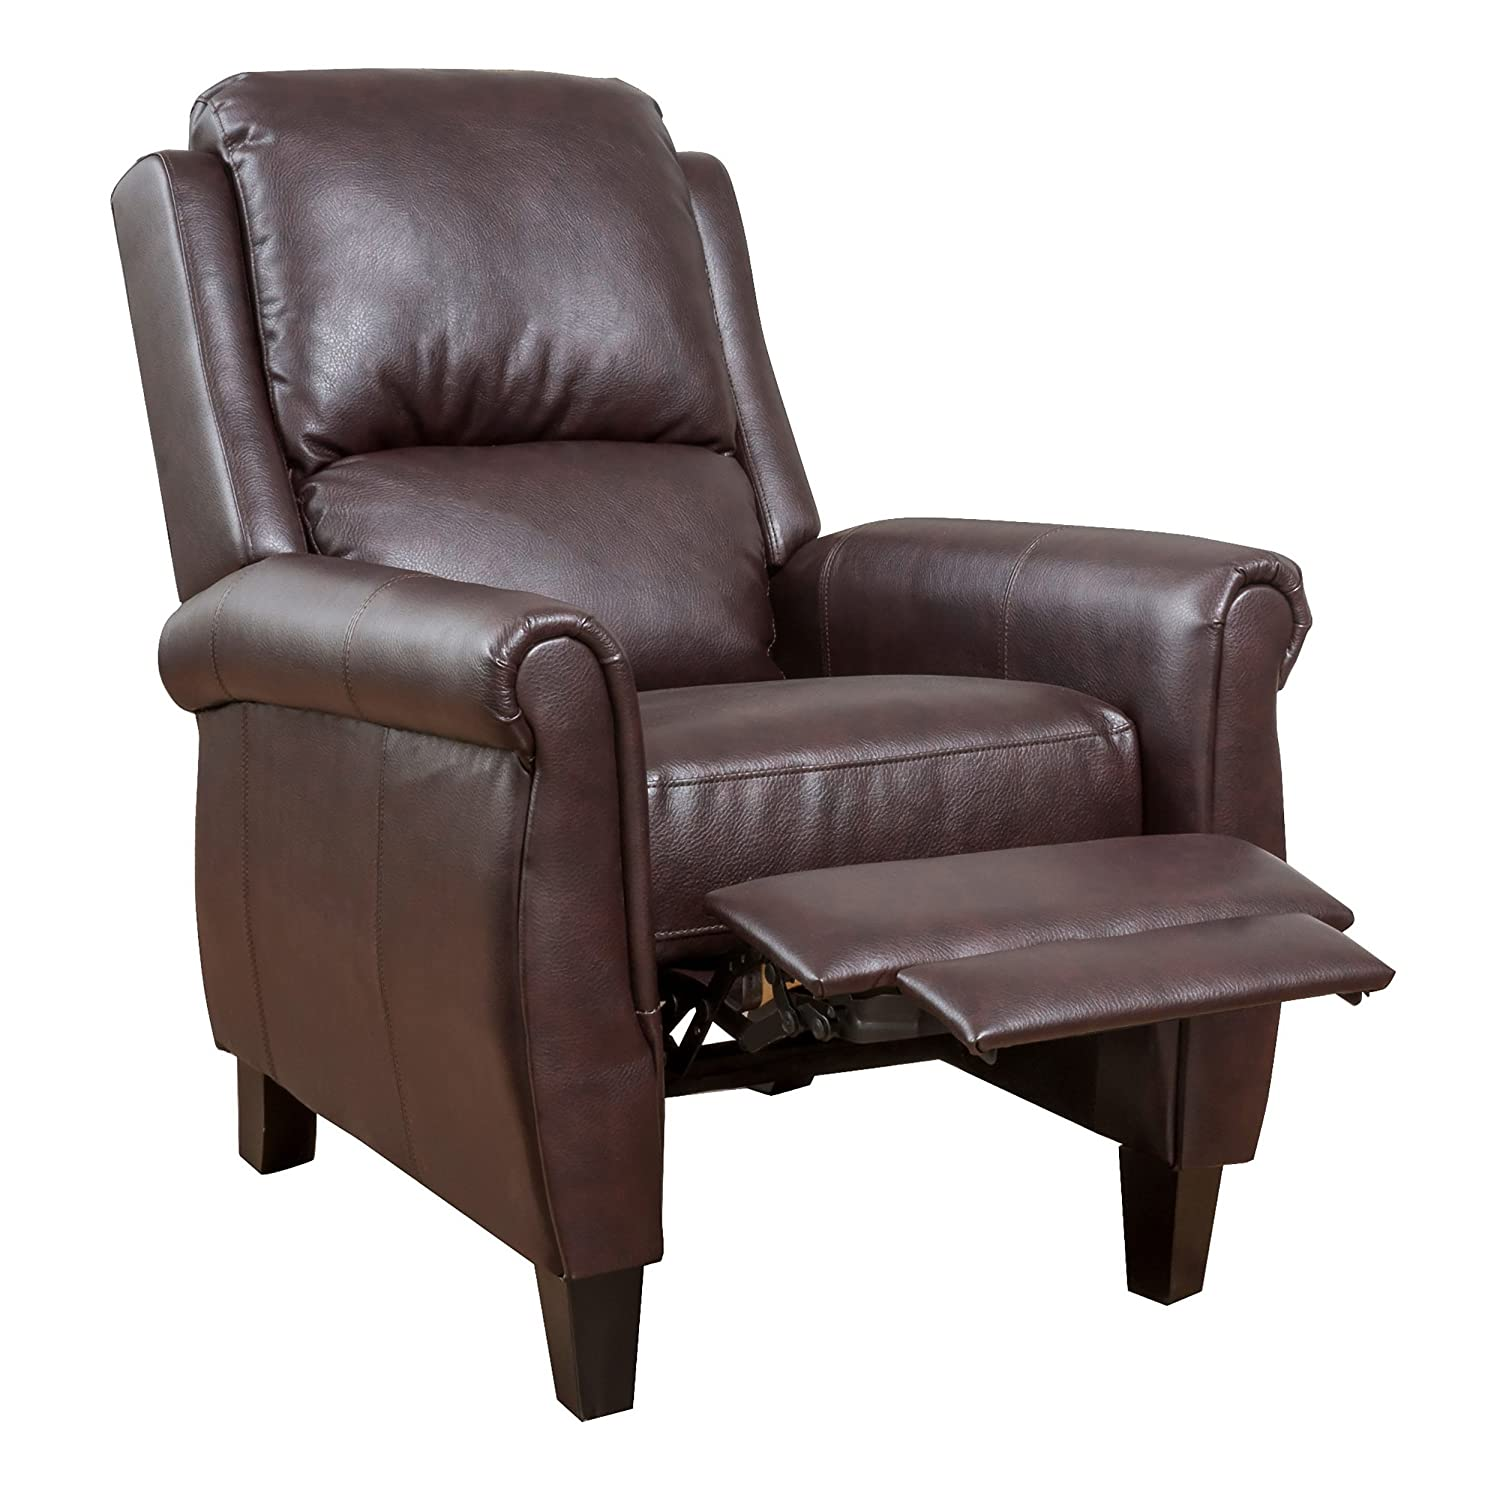 Club chair recliner - Amazon Com Denise Austin Home Memphis Pu Leather Recliner Club Chair Patio Lawn Garden